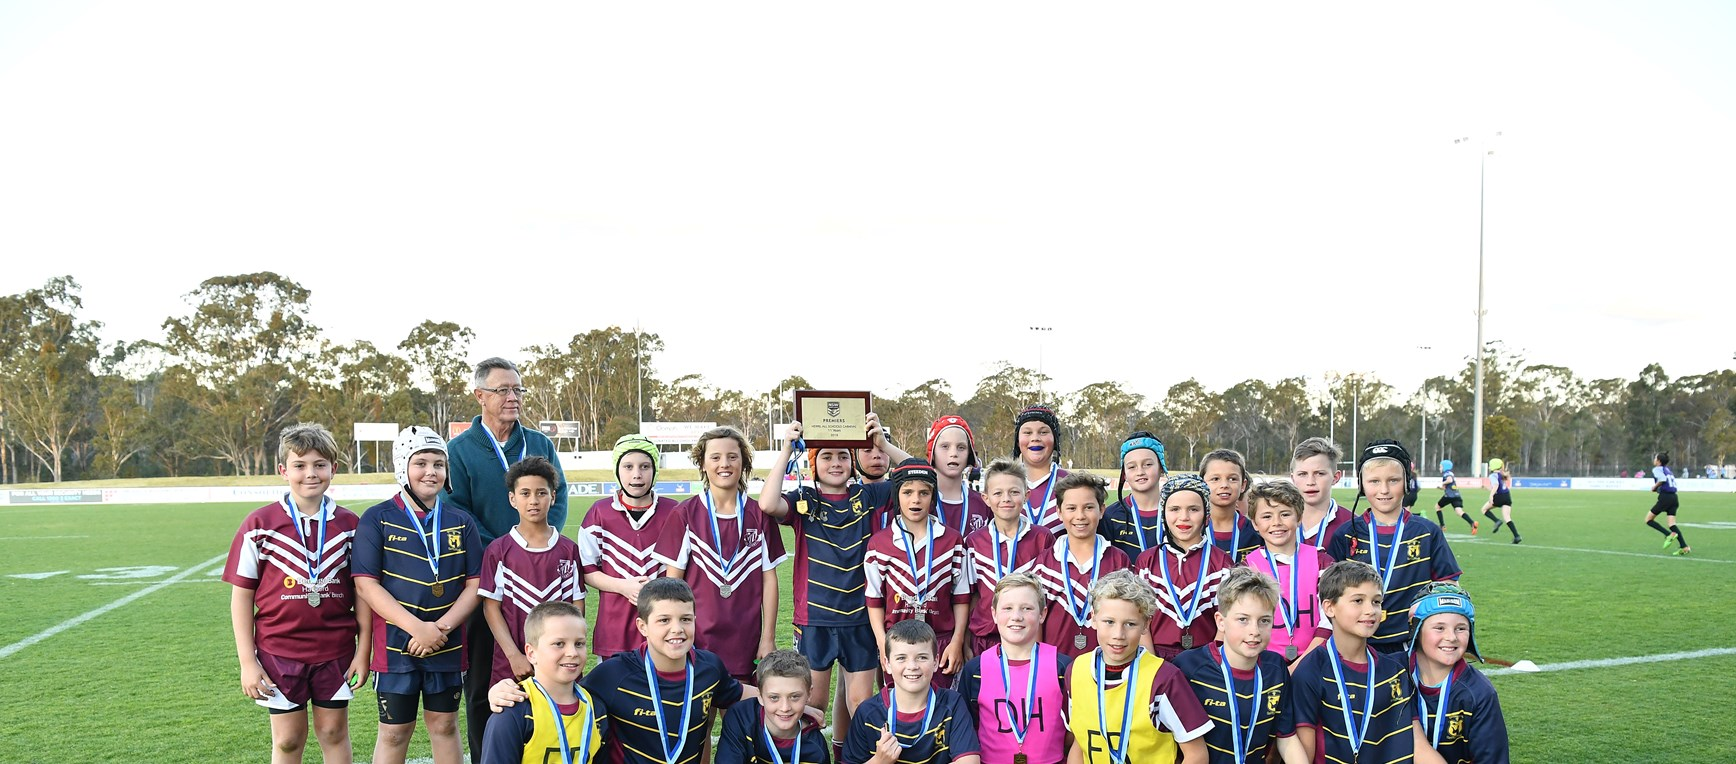 GALLERY | 2018 NSWRL All Schools Carnival – Day One (Primary)